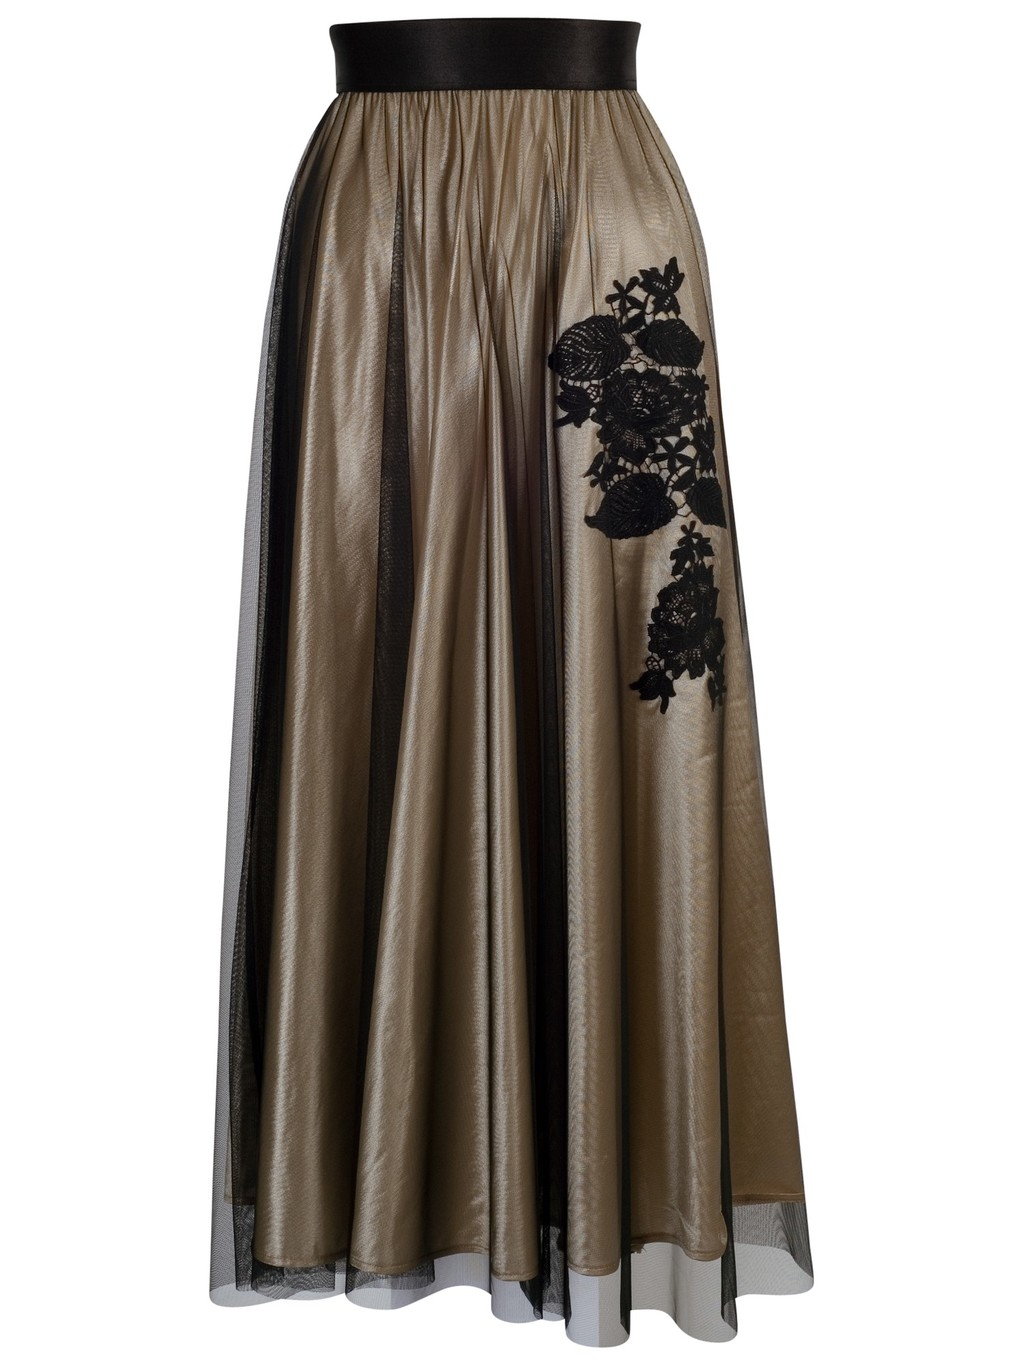 Lined Mesh Skirt, Gold - pattern: plain; style: full/prom skirt; length: ankle length; fit: loose/voluminous; waist: high rise; predominant colour: gold; secondary colour: black; occasions: evening, occasion; fibres: polyester/polyamide - 100%; hip detail: subtle/flattering hip detail; texture group: sheer fabrics/chiffon/organza etc.; pattern type: fabric; embellishment: embroidered; season: a/w 2014; wardrobe: event; embellishment location: hip, waist